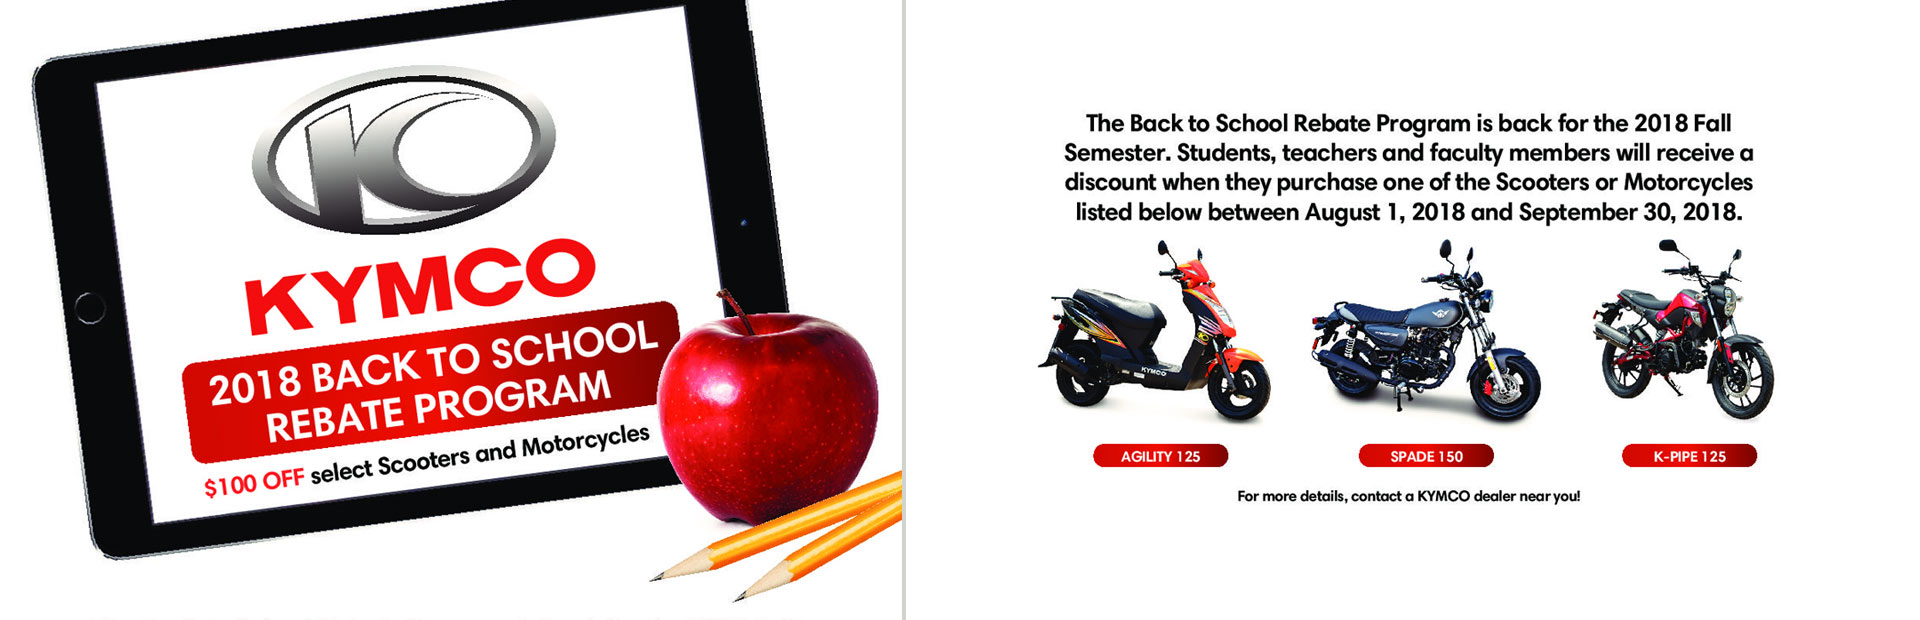 KYMCO: Back To School Rebate Program